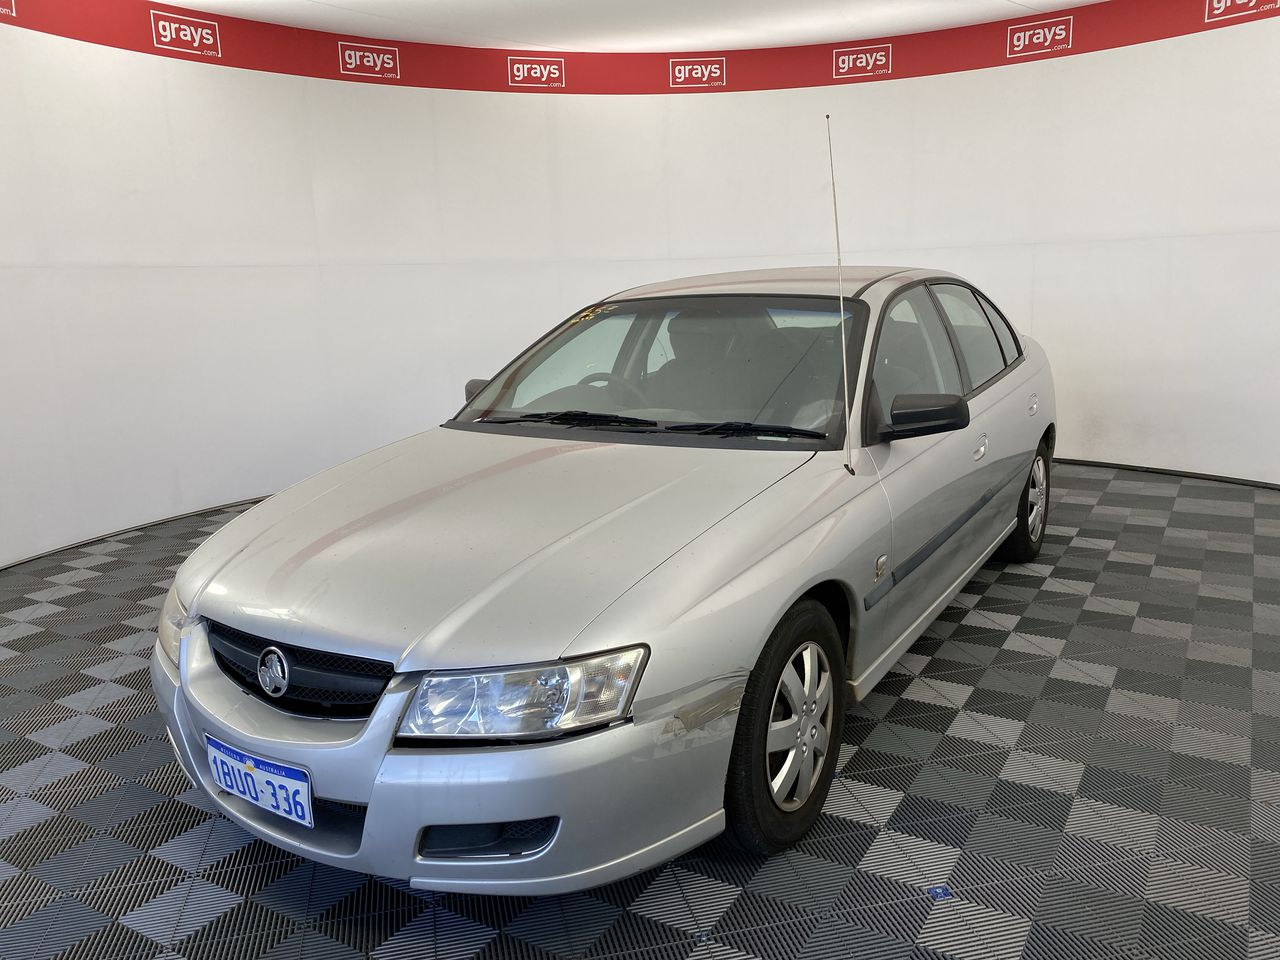 2005 Holden Commodore Executive VZ Automatic Sedan